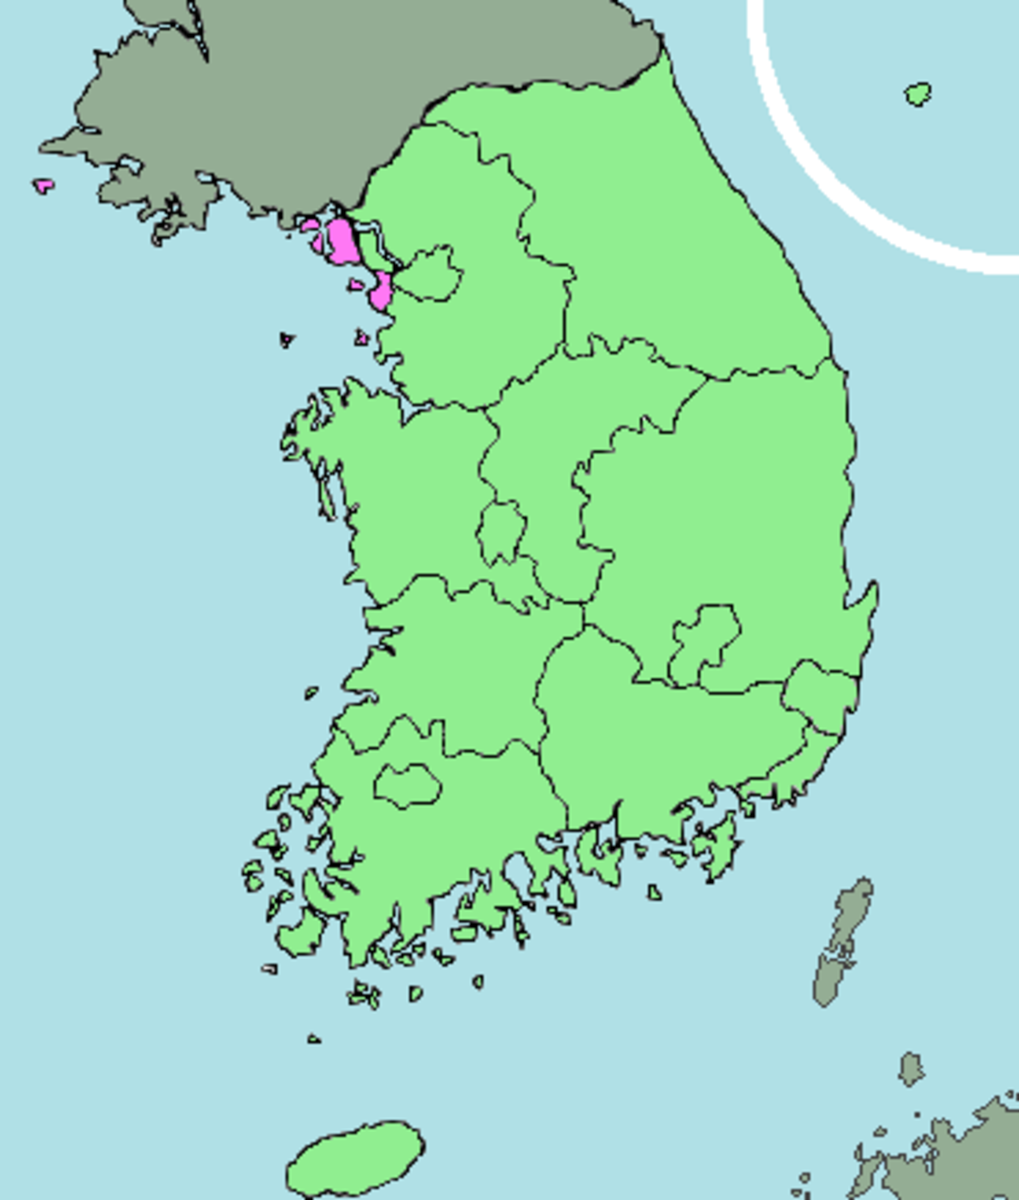 Inchon, South Korea, in pink coloring.